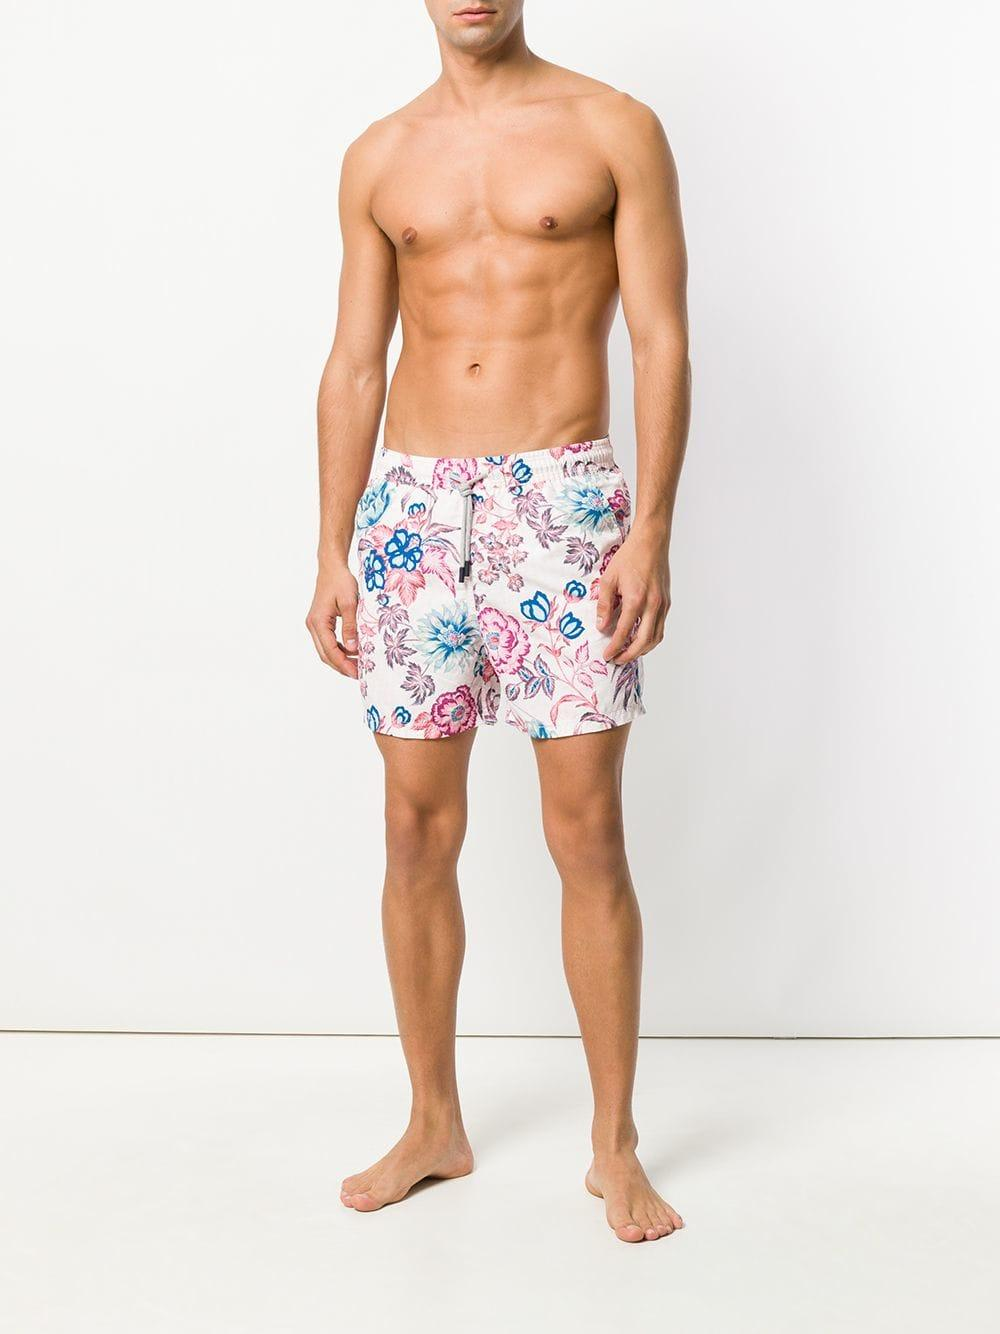 7234dfdc3e8 Lyst - Etro Floral Print Swim Shorts in Pink for Men